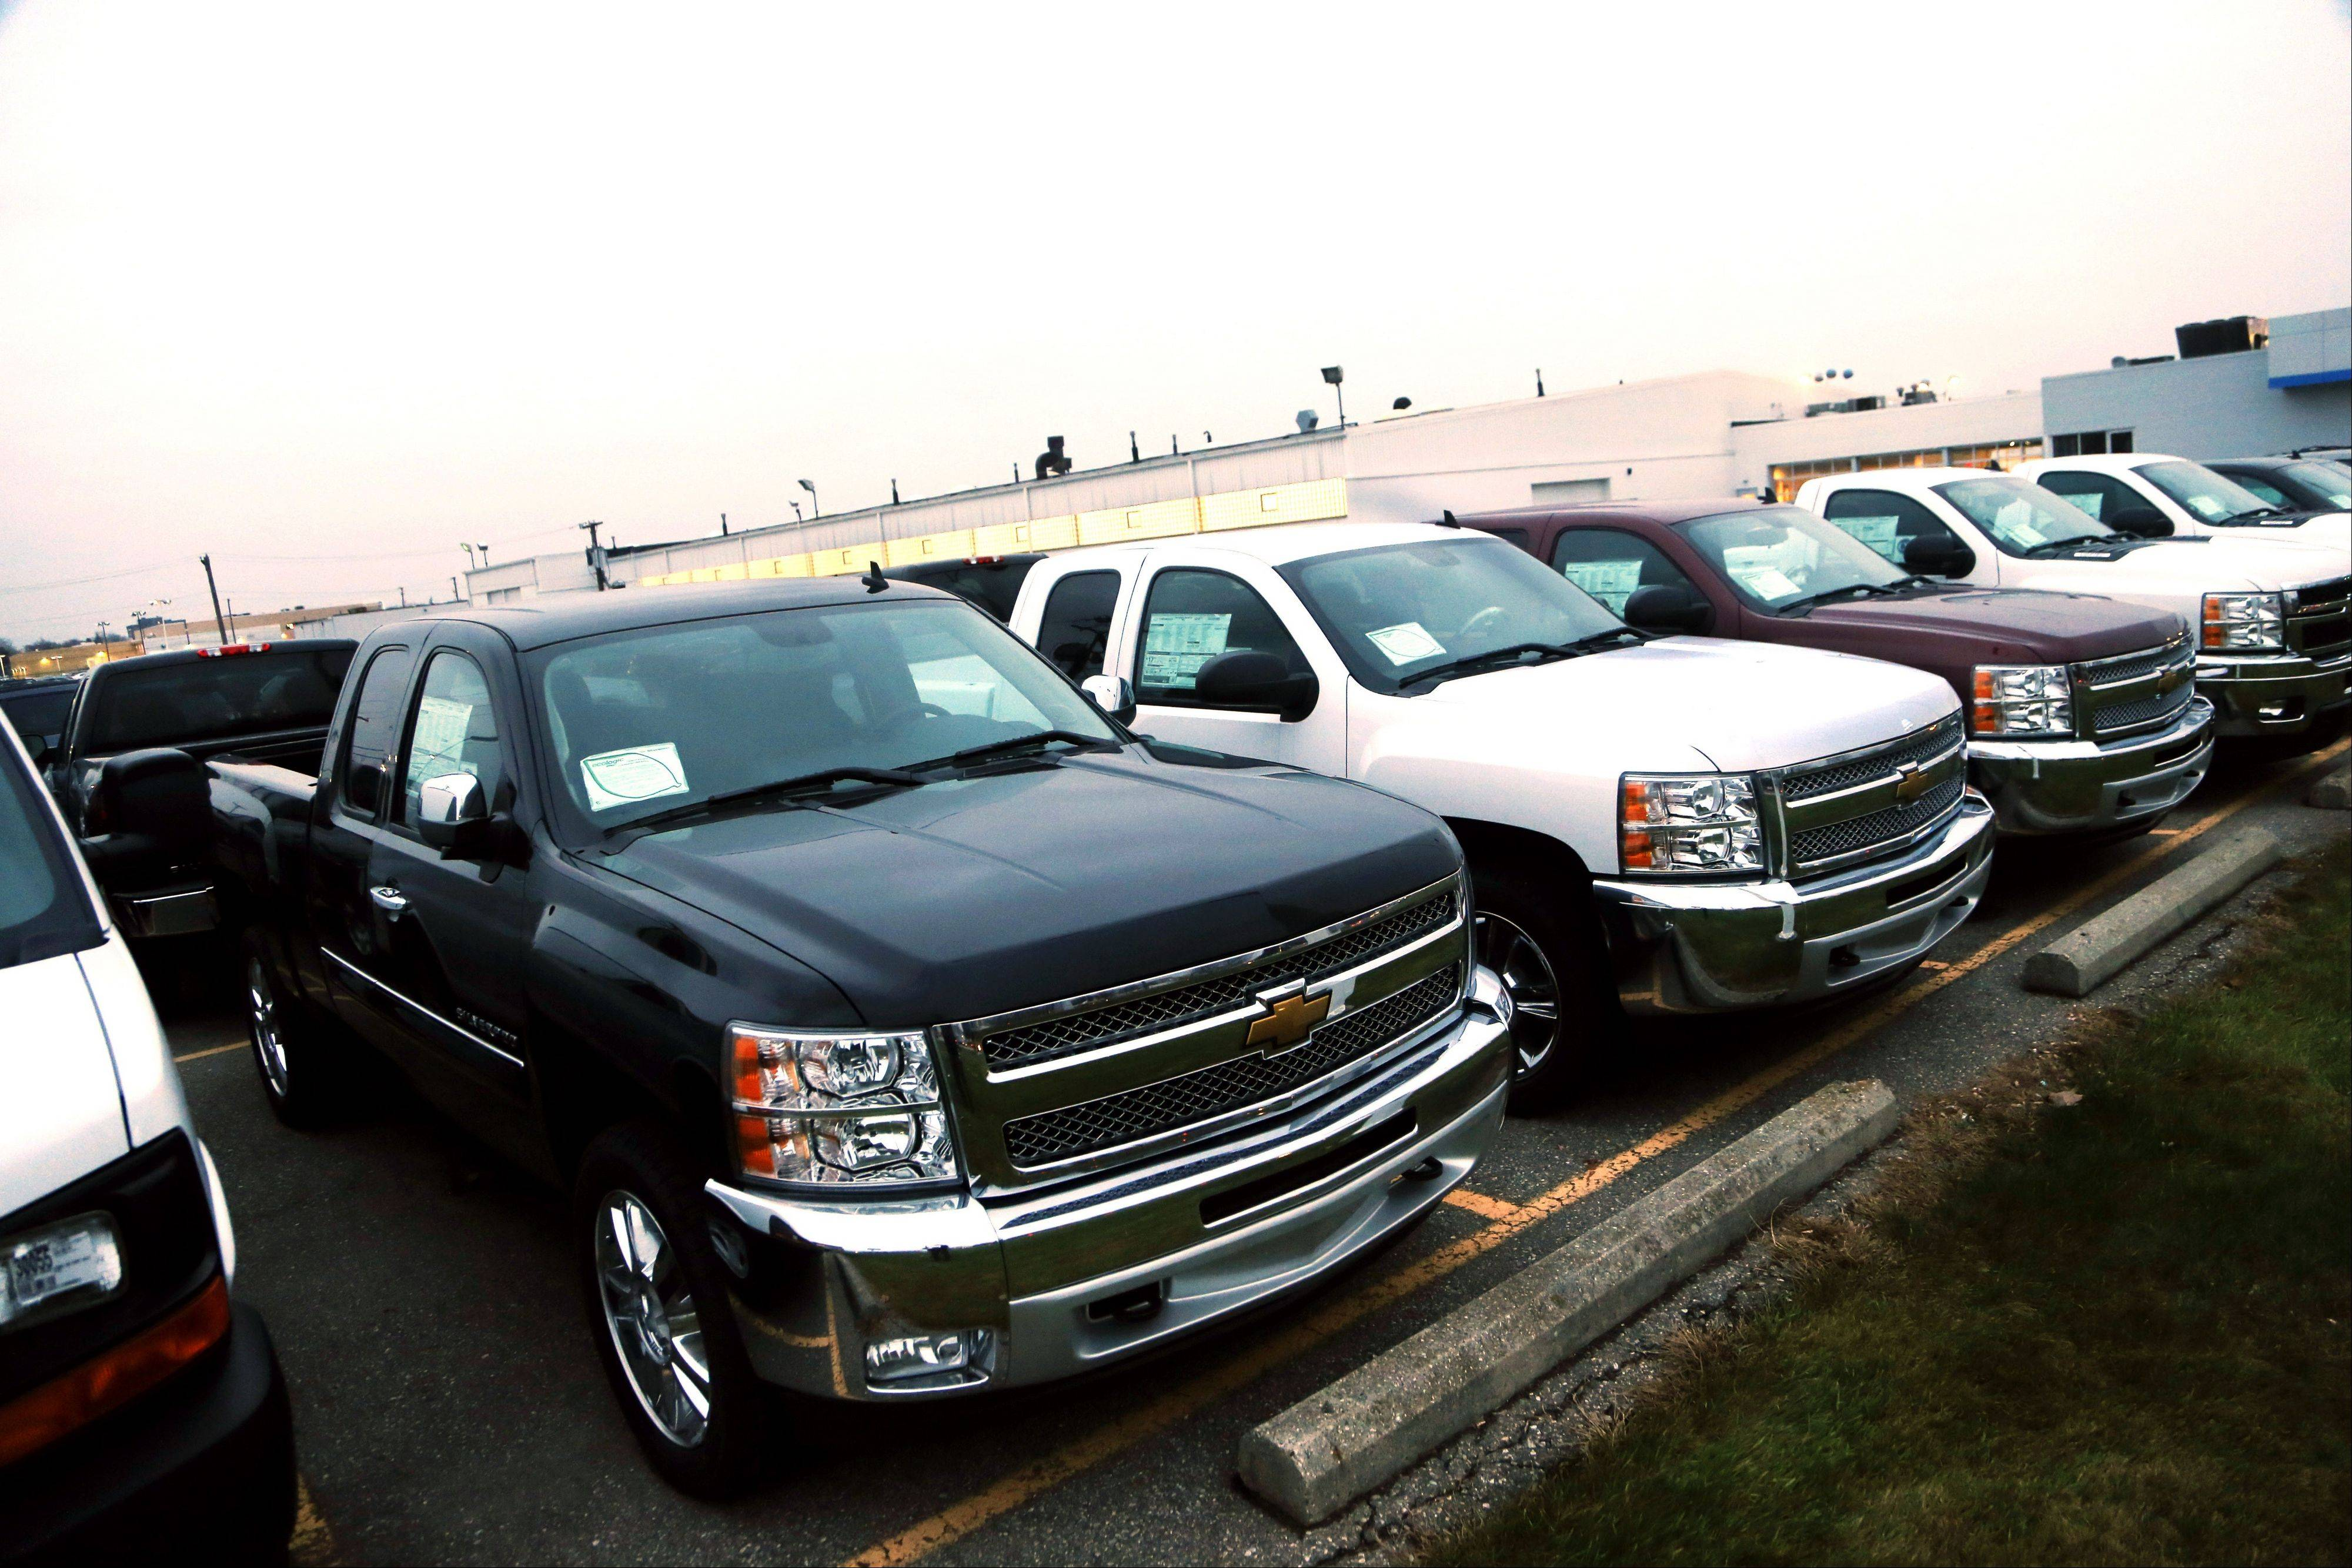 General Motors is offering generous deals to clear a growing inventory of Chevy and GMC pickup trucks. ItÌs matching or beating deals offered by Ford and Chrysler. That, plus low interest rates, sweet lease deals and abundant financing, is good news for truck buyers.